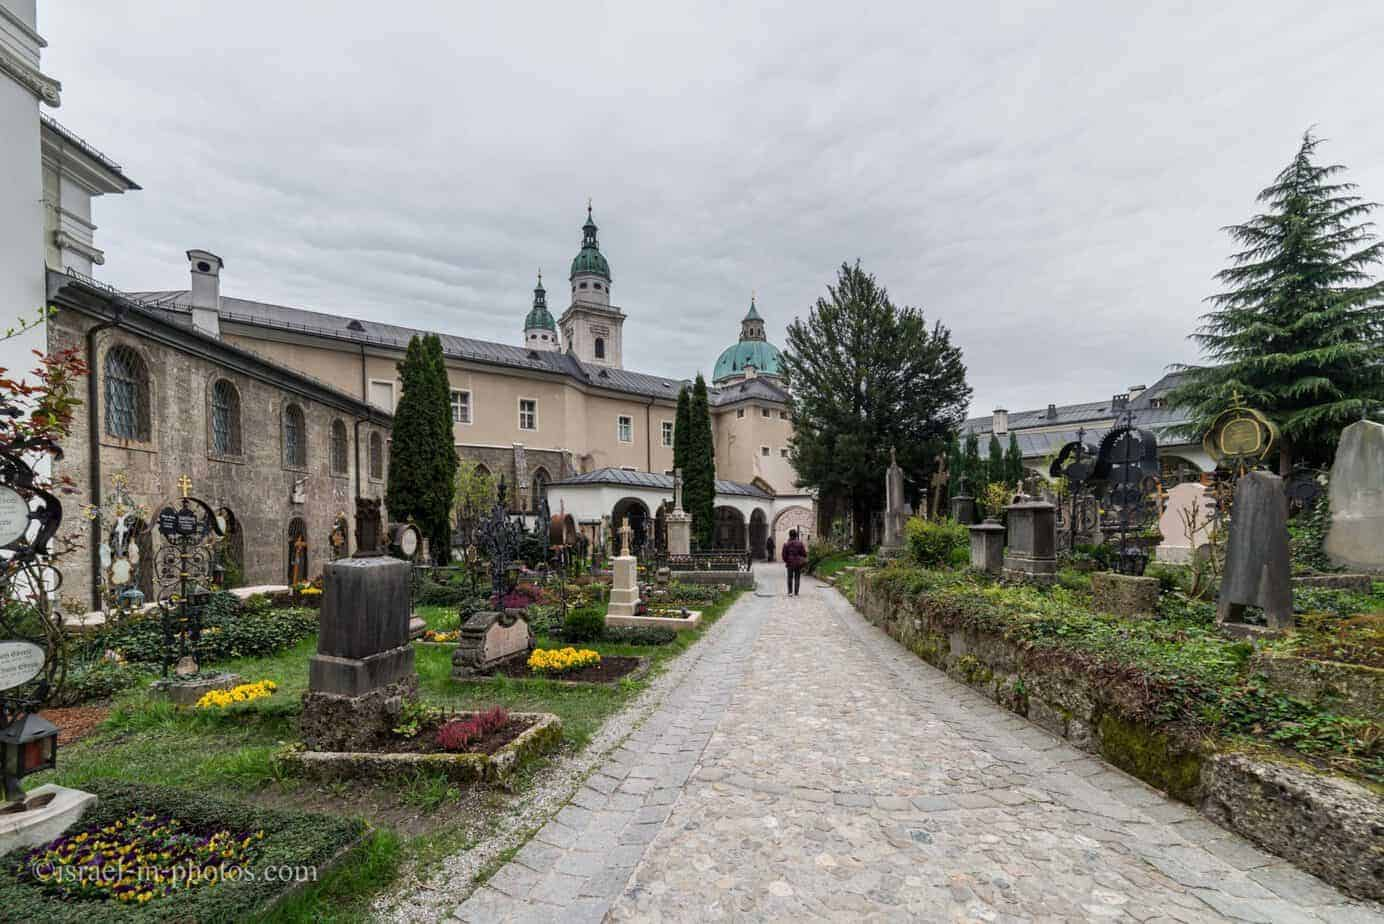 Visiting Petersfriedhof cemetry in Salzburg, Austria